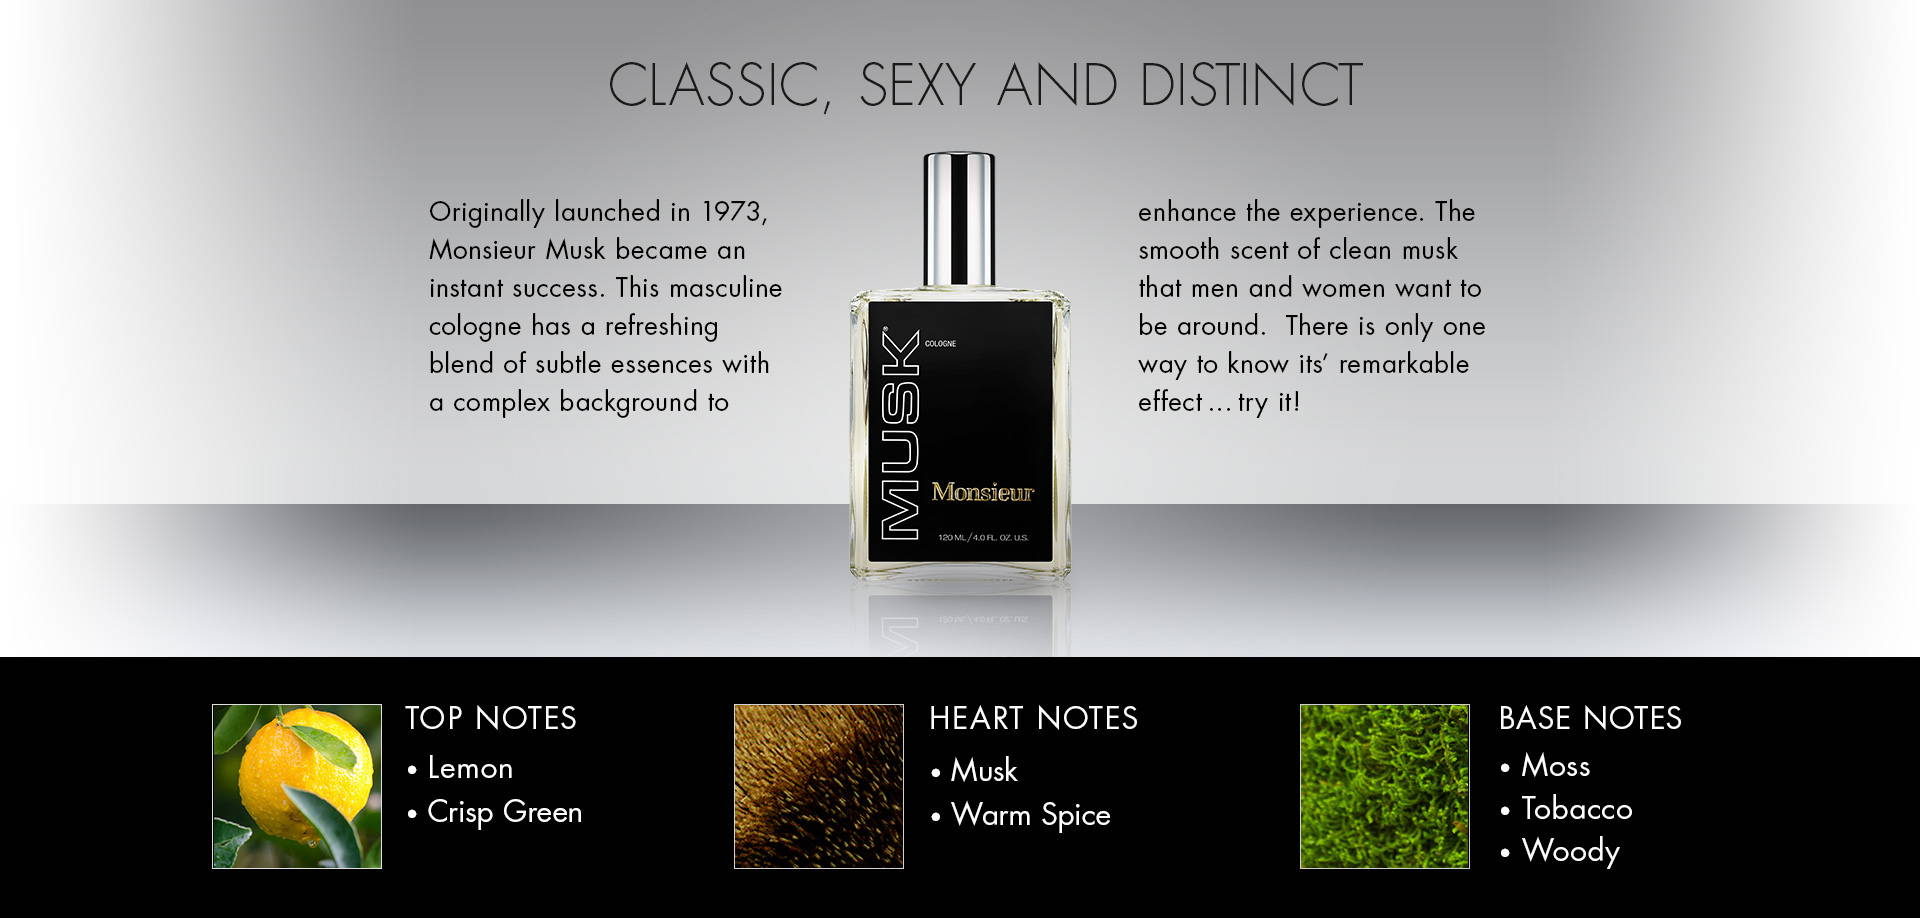 Classic, Sexy and Distinct. Originally launched in 1973, Monsieur Musk became an instant success. This masculine cologne has a refreshing blend of subtle essences with a complex background to enhance the experience. The smooth scent of clean musk that men and women want to be around.  There is only one way to know its' remarkable effect … try it! TOP NOTES • Lemon• Crisp Green. HEART NOTES • Musk• Warm Spice. BASE NOTES • Moss• Tabaco• Woody.